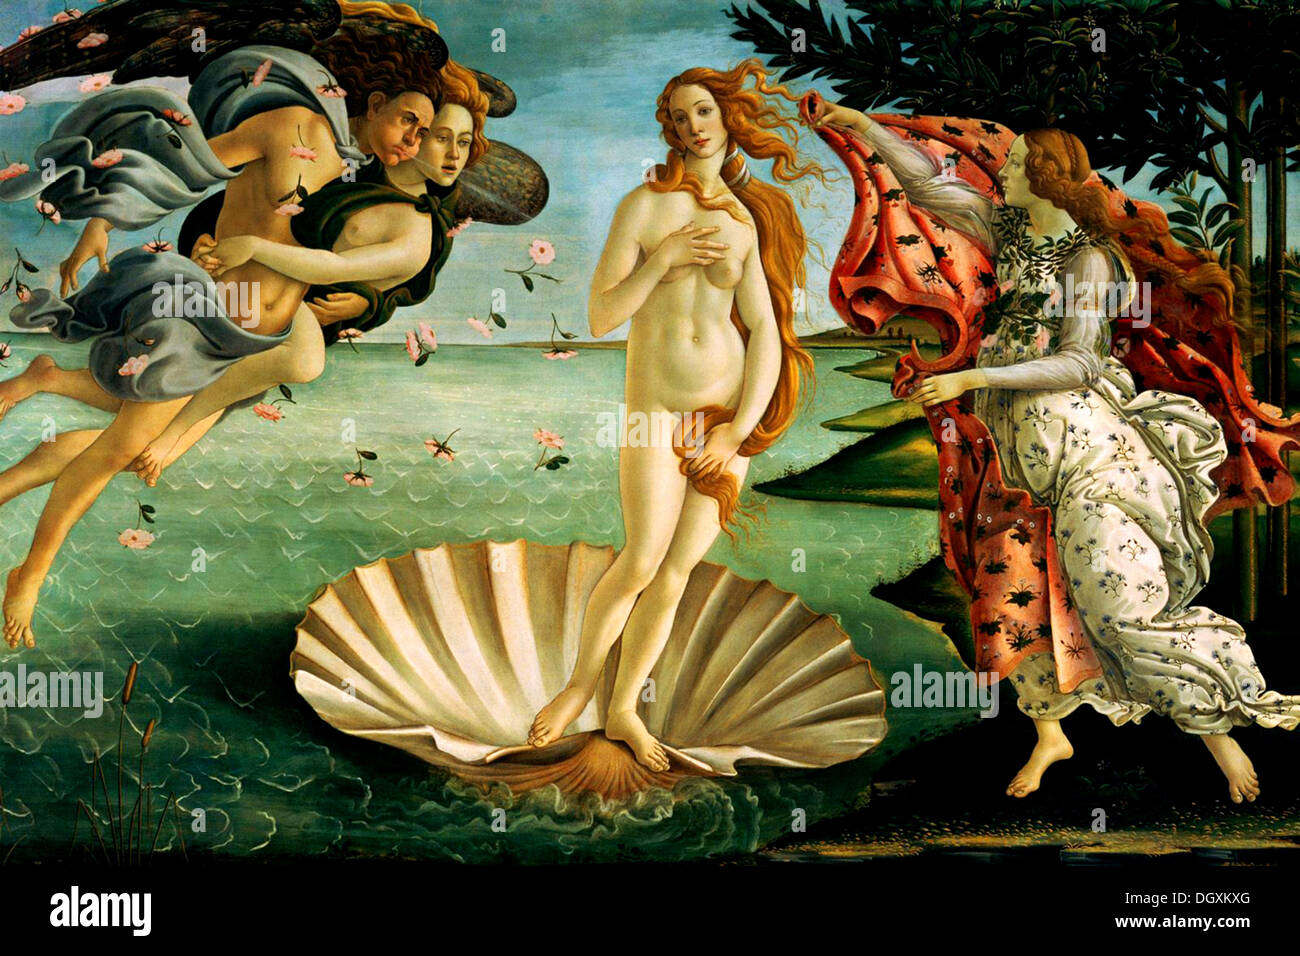 The Birth of Venus  - by Sandro Botticelli, 1486 - Editorial use only. - Stock Image